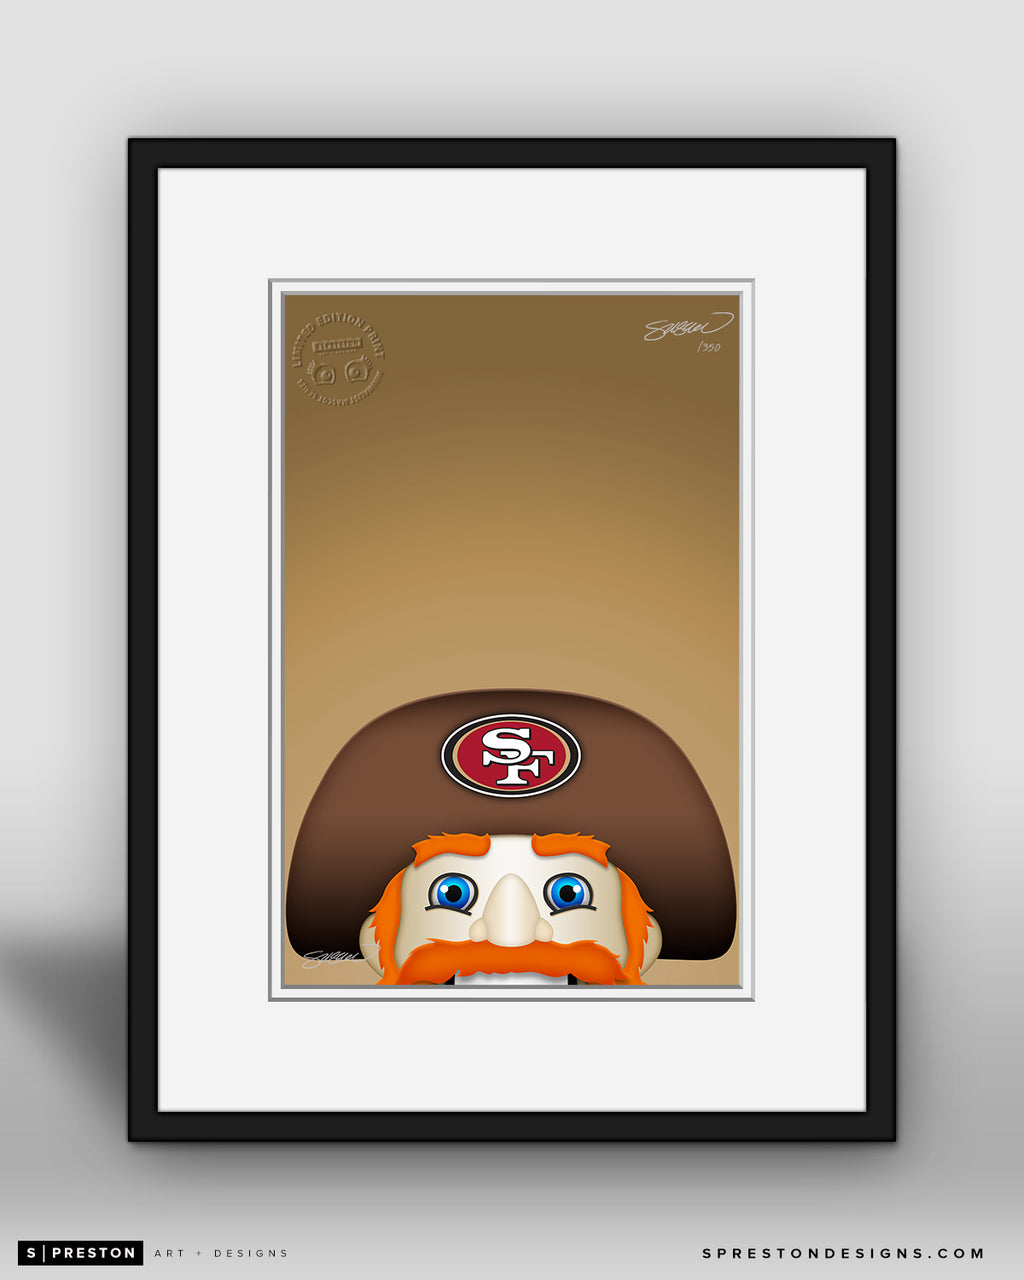 Minimalist Sourdough Sam - San Francisco Giants - S. Preston